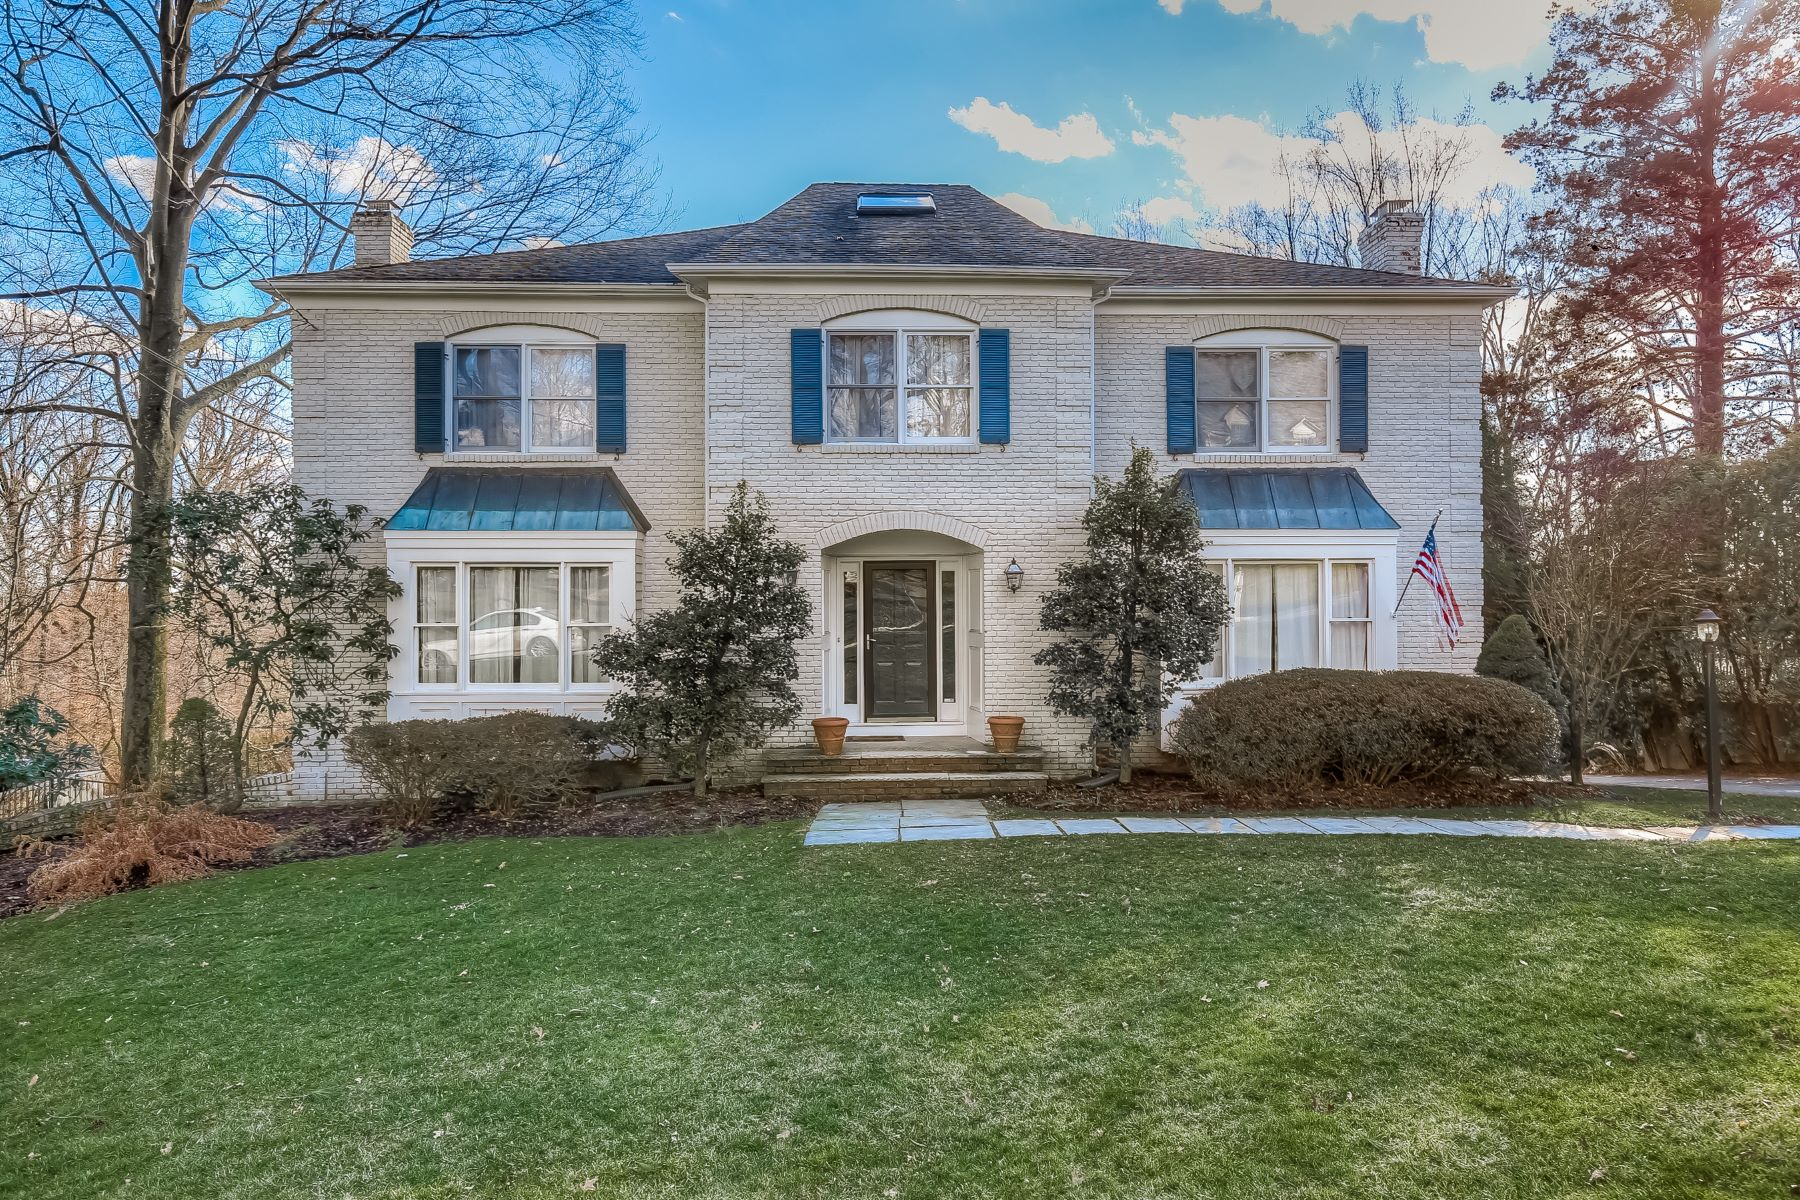 Single Family Home for Sale at Elegant Georgian Colonial 38 Spring Brook Road Morris Township, New Jersey 07960 United States